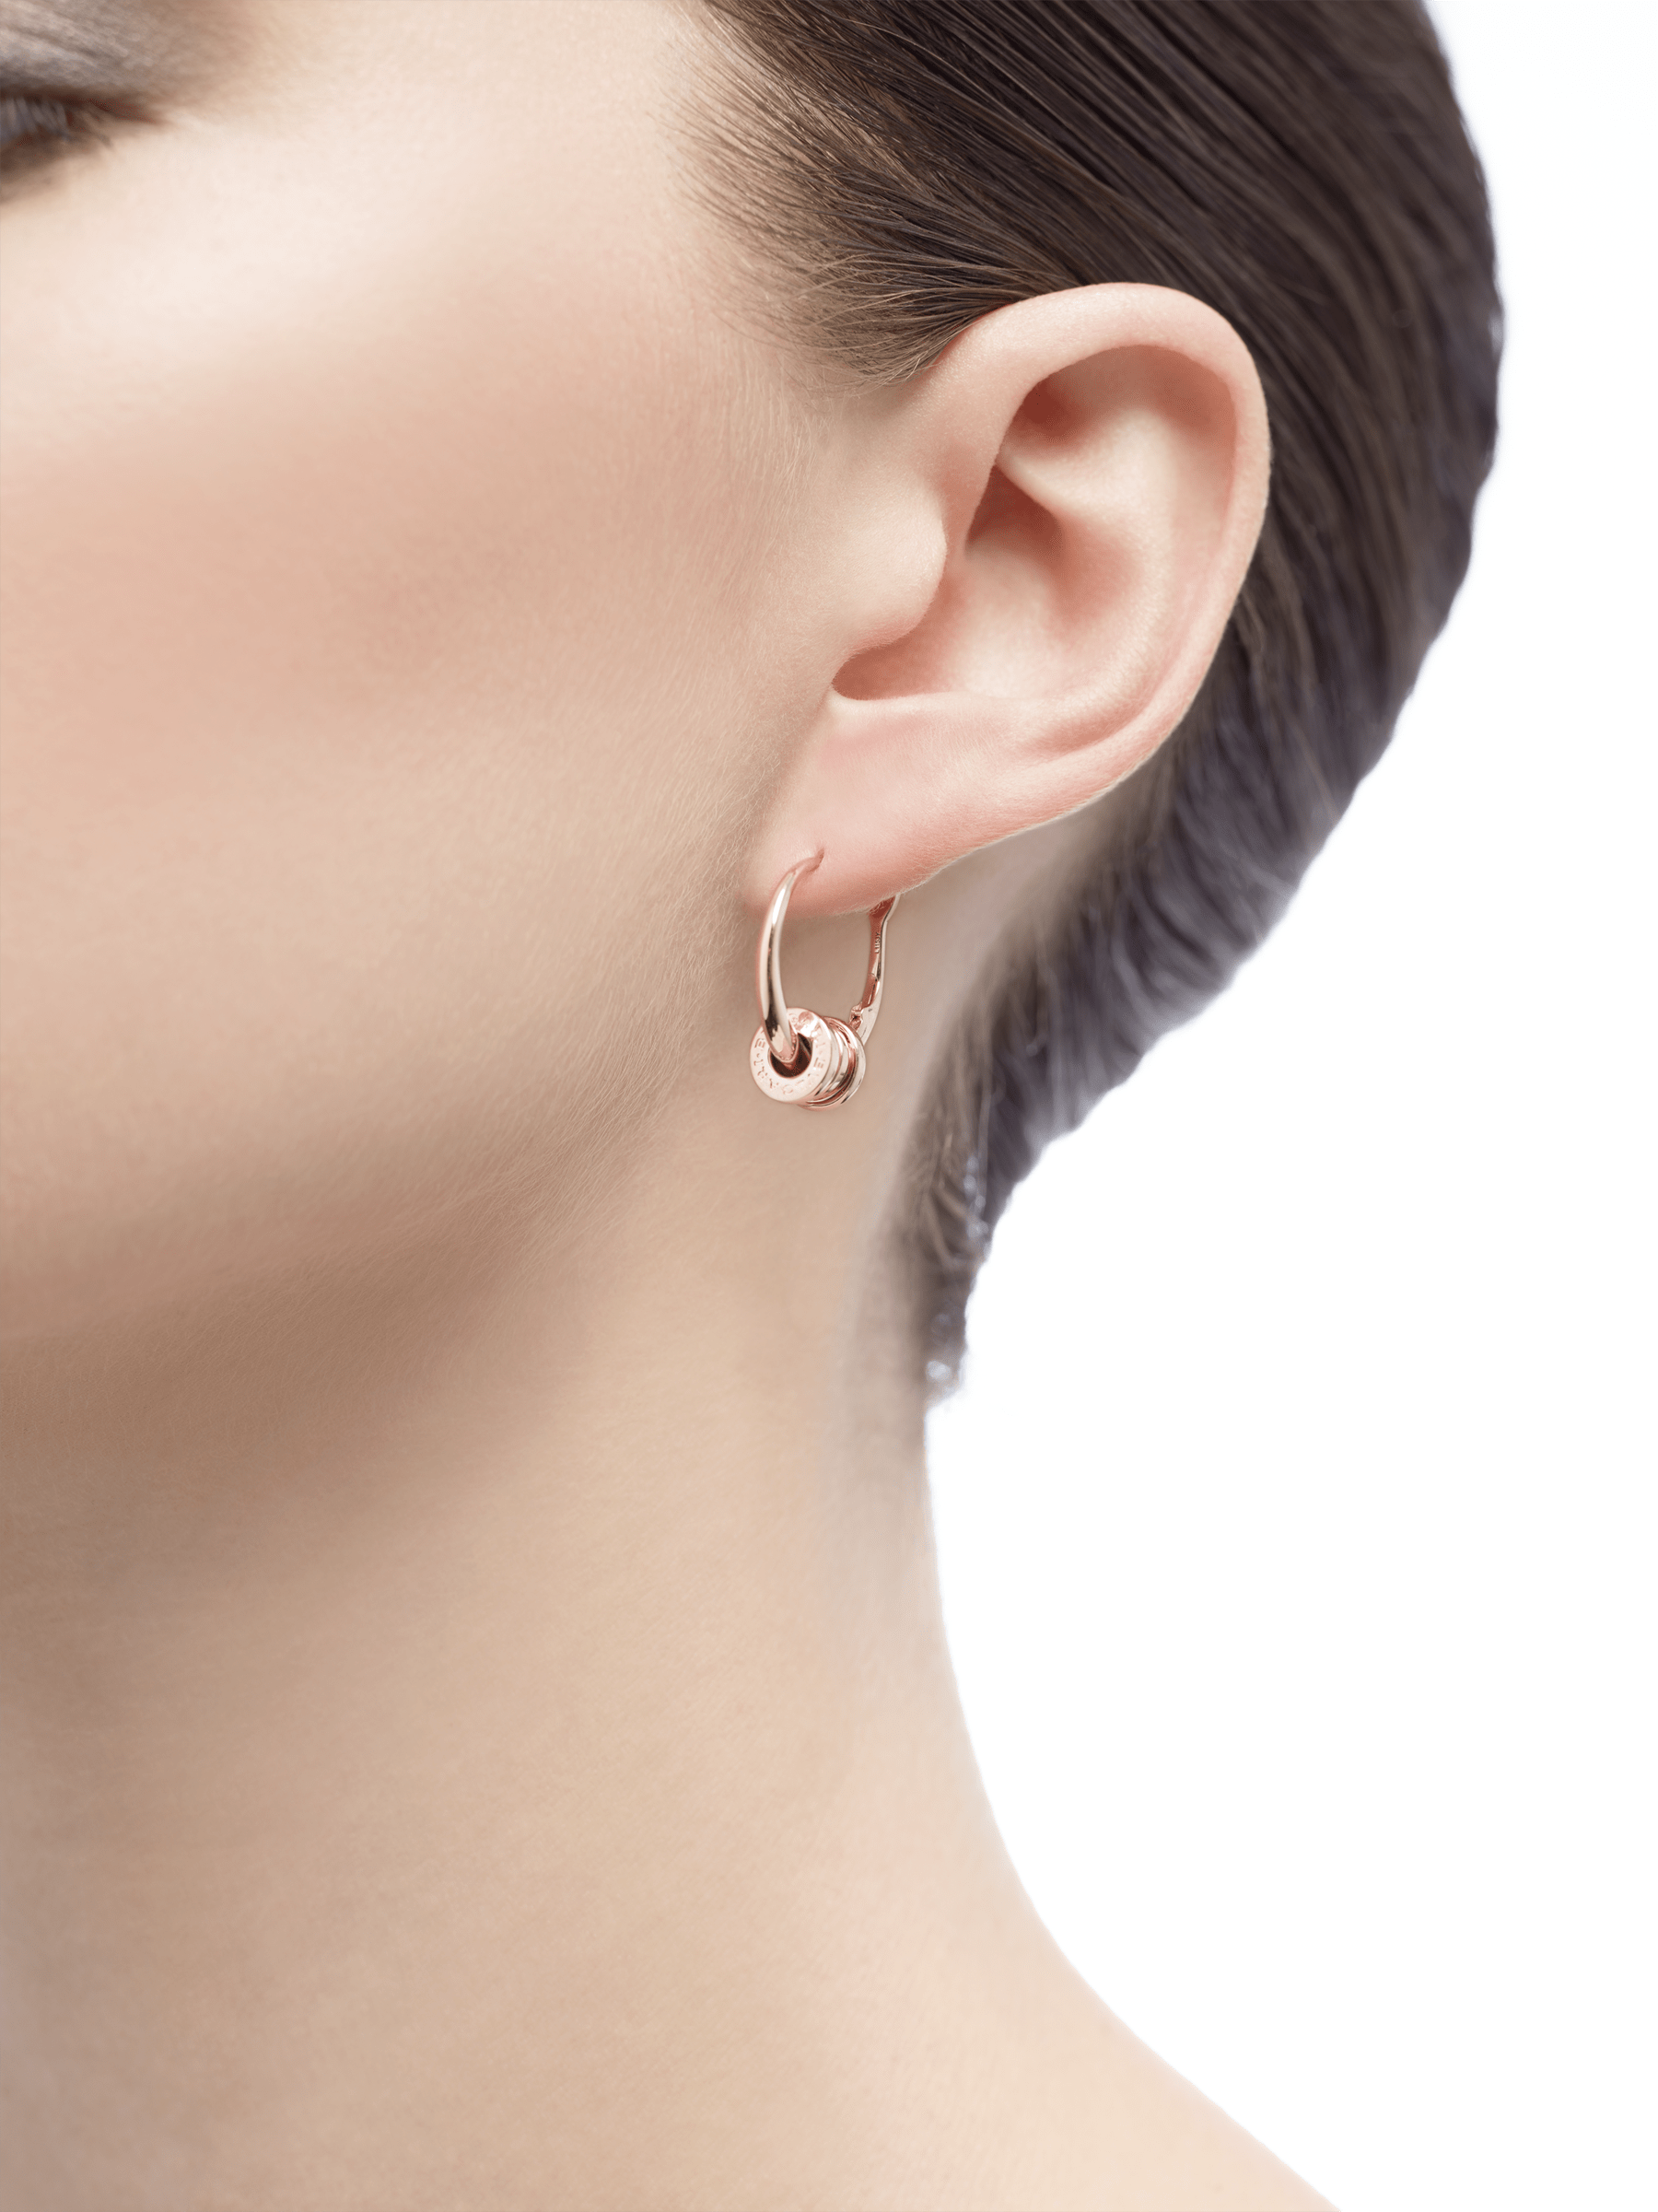 B.zero1 hoop earrings in 18 kt rose gold. 355007 image 3